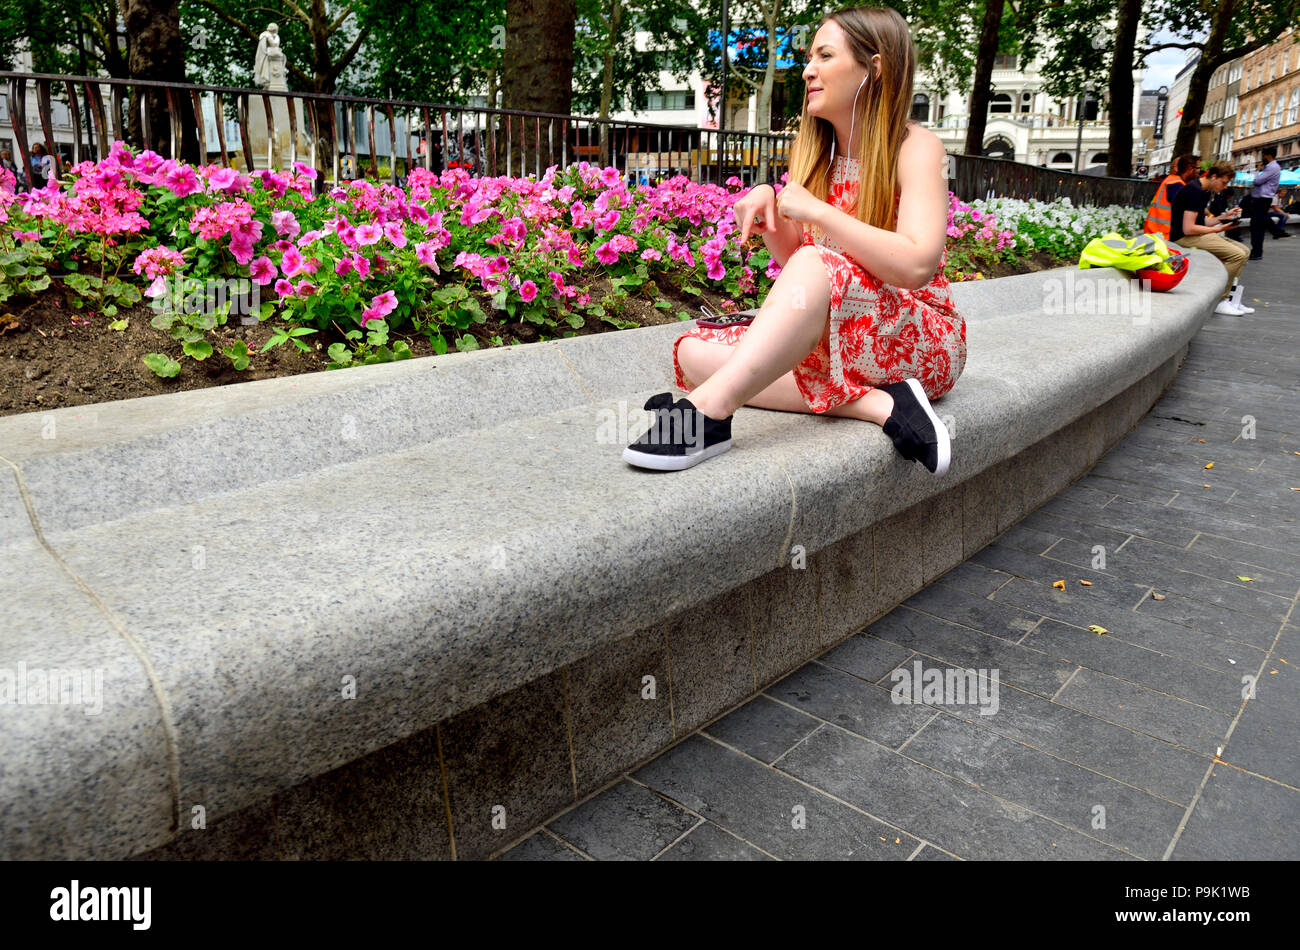 Young woman sitting listening to music on headphones in Leicester Square, London, England, UK. - Stock Image